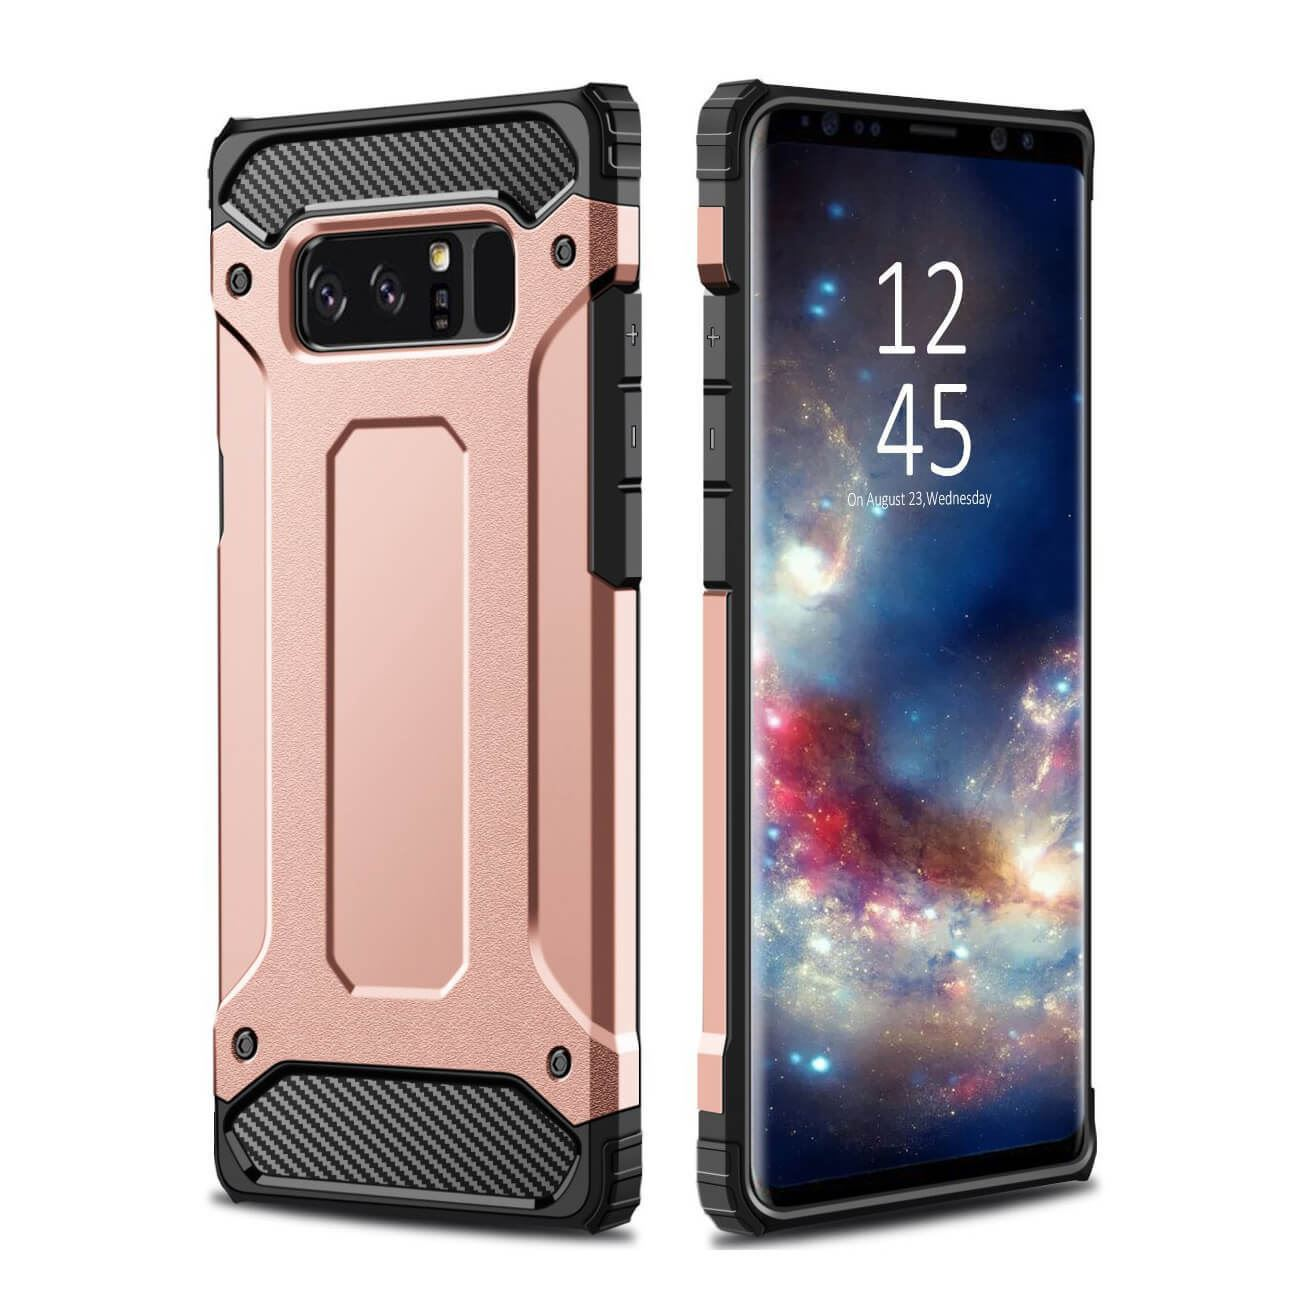 Hybrid-Armor-Case-For-Samsung-Galaxy-S7-S8-S9-Shockproof-Rugged-Bumper-Cover thumbnail 36